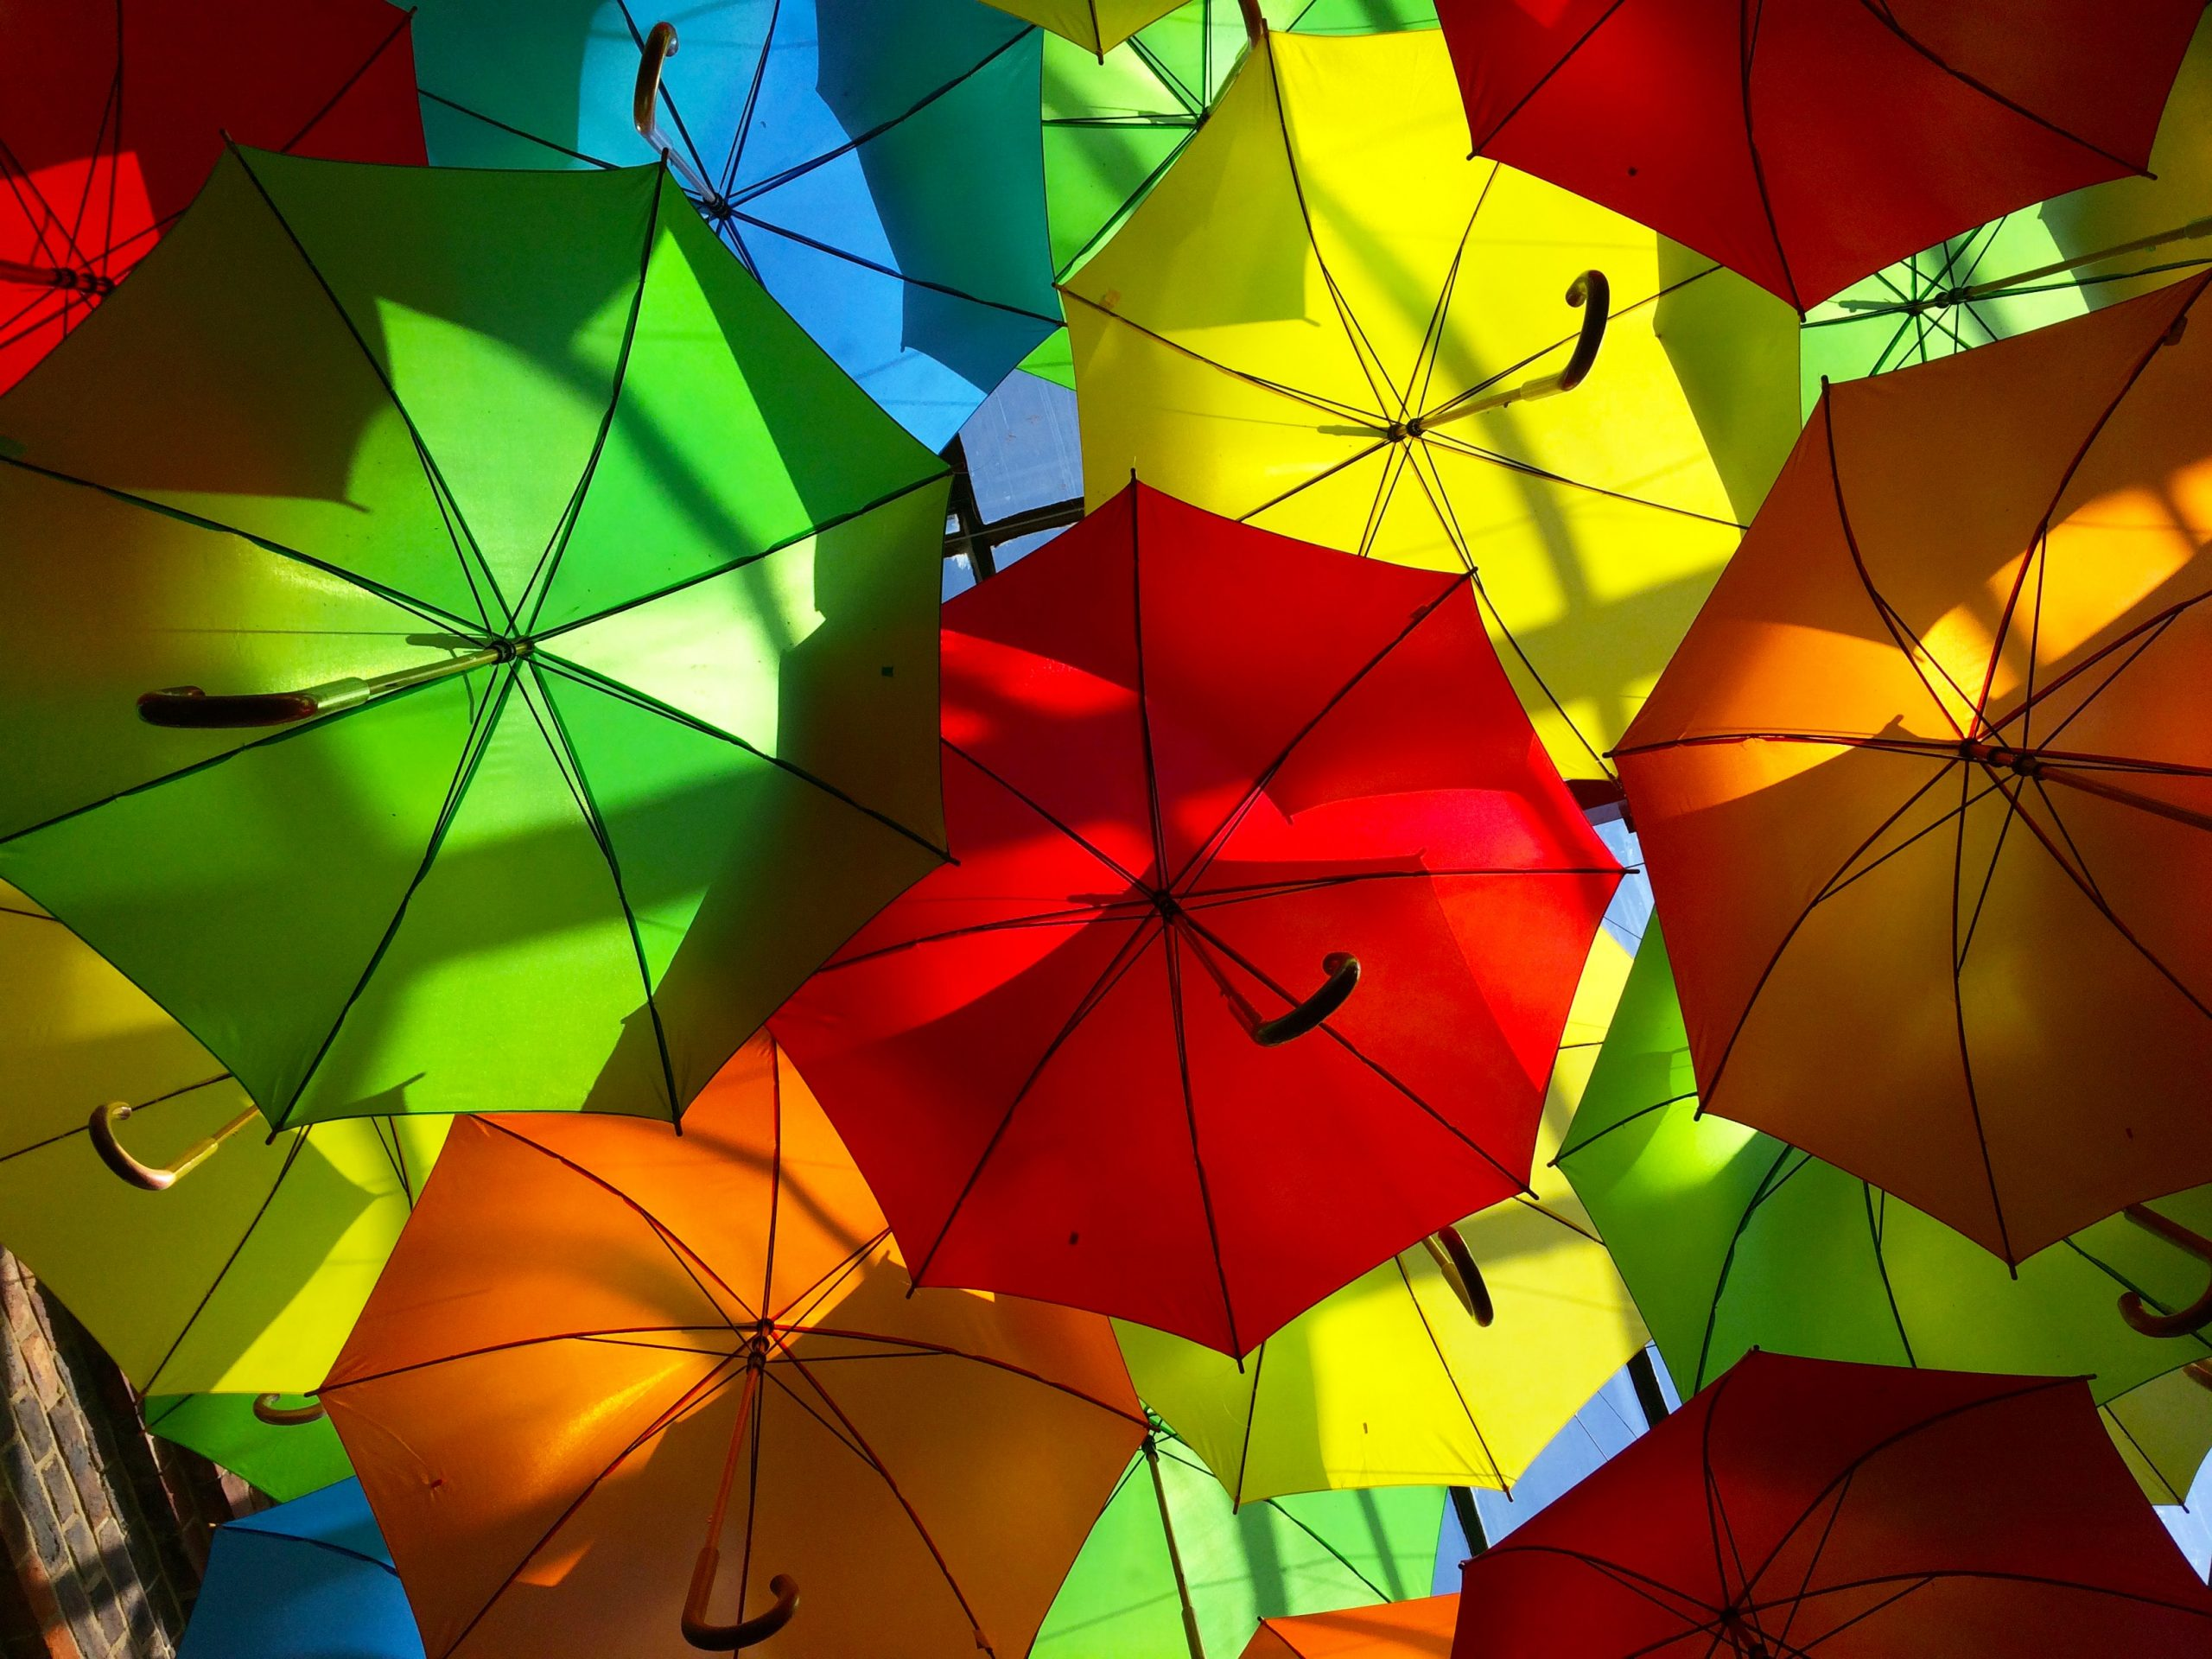 colourful umbrellas as a symbol for cybersecurity and fraud prevention